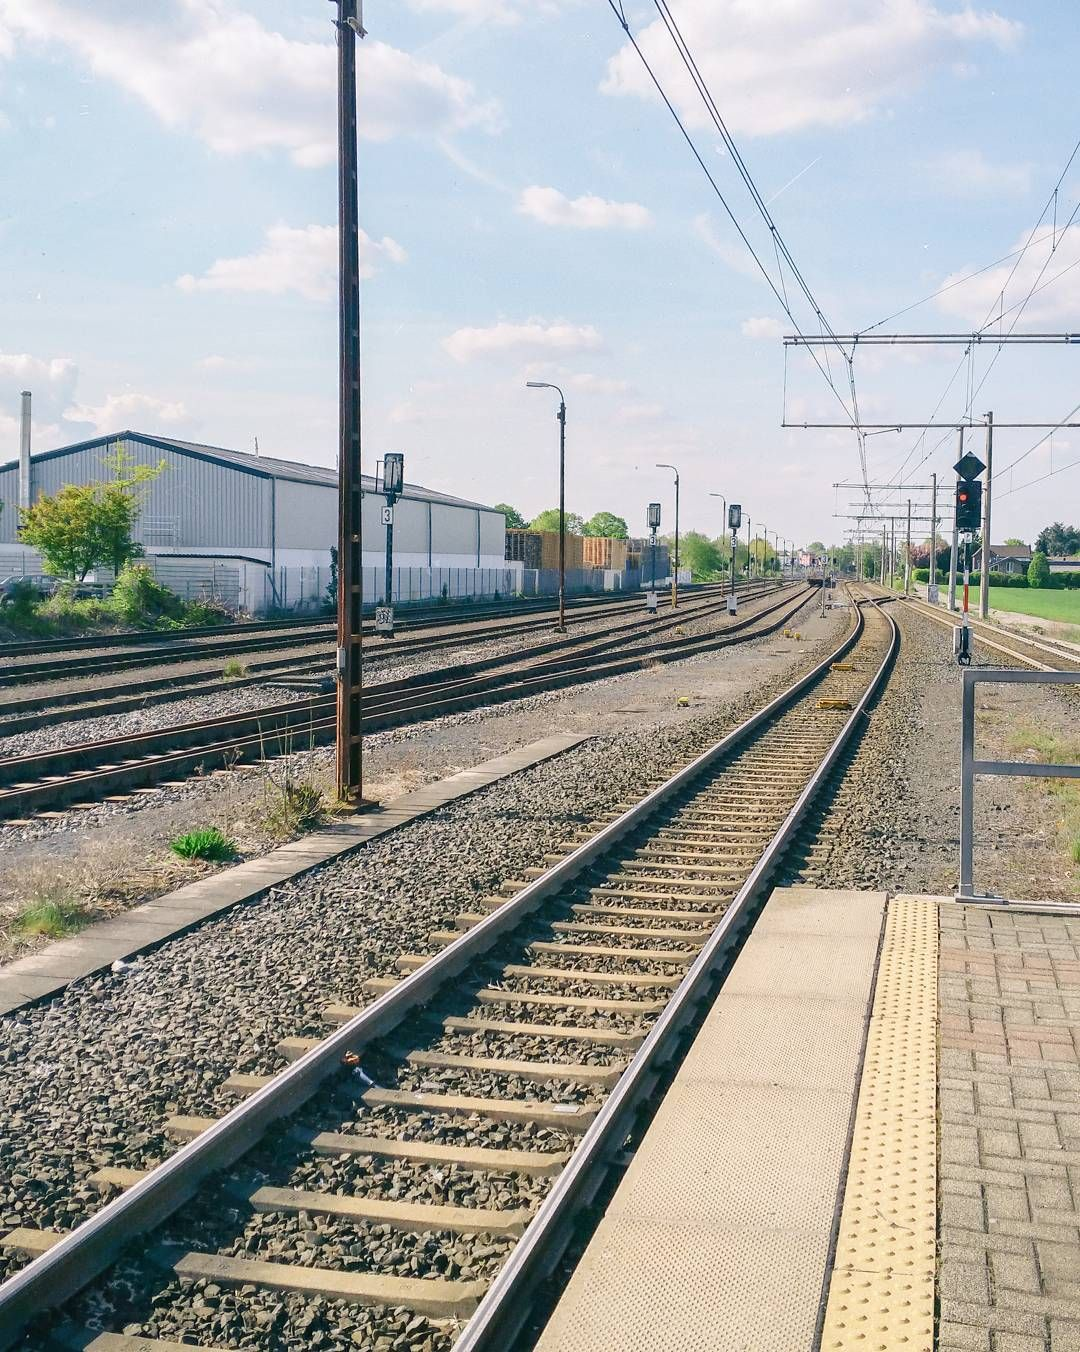 Feiertag ----- #analog #sun #sonne #colors #warm #farben #train ...